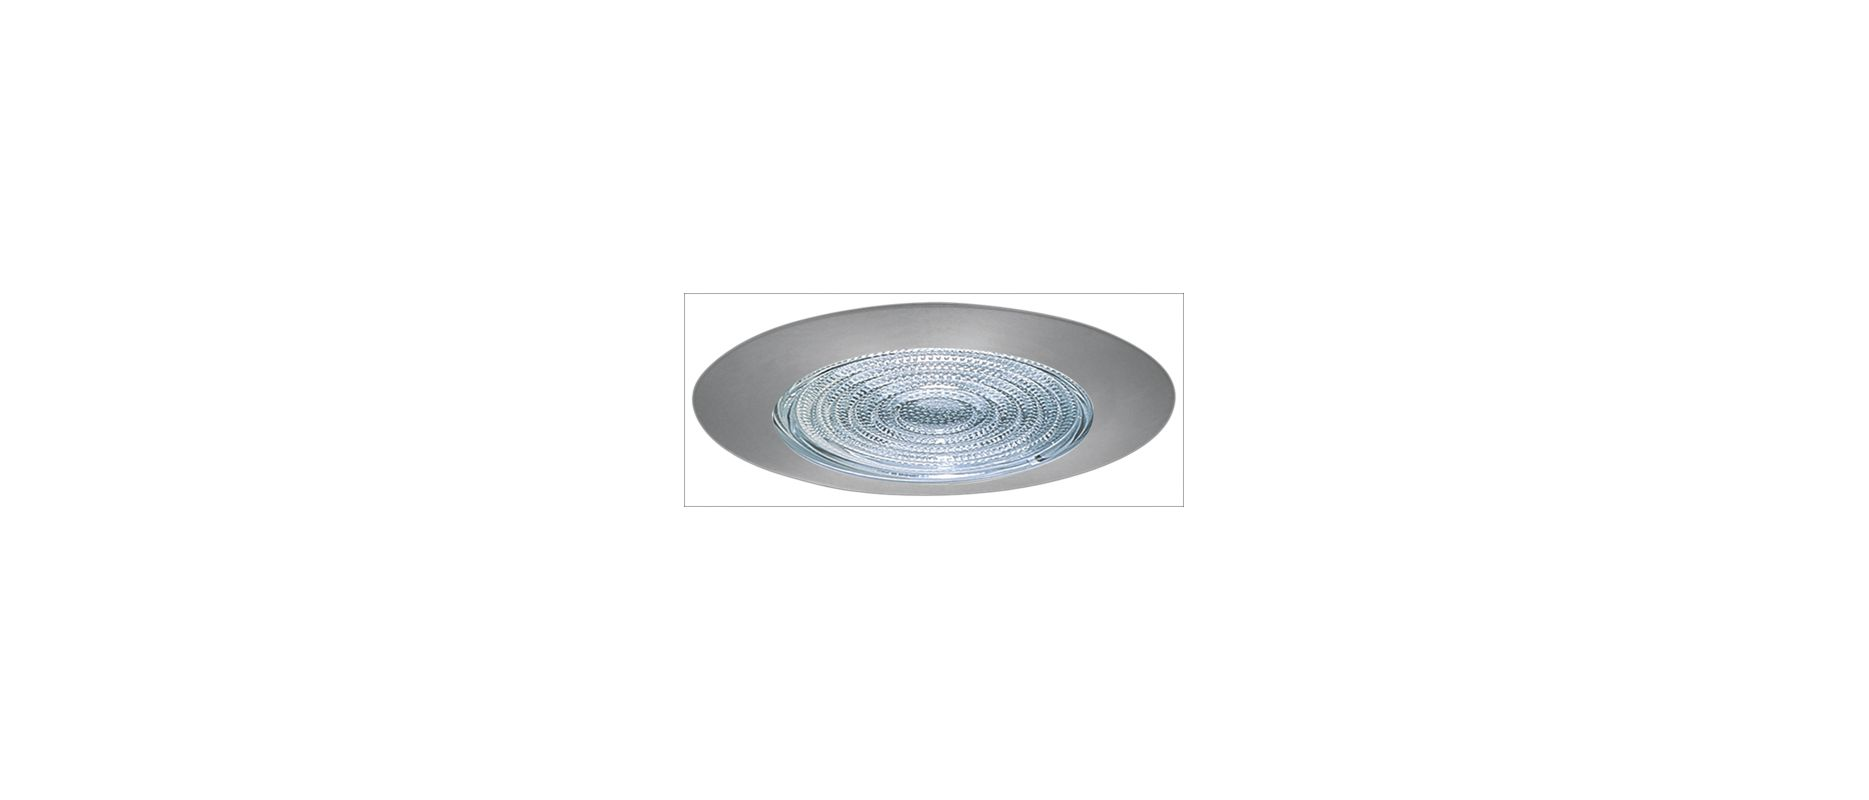 "Elco EL913 4"" Shower Trim with Fresnel Lens Nickel Recessed Lights"